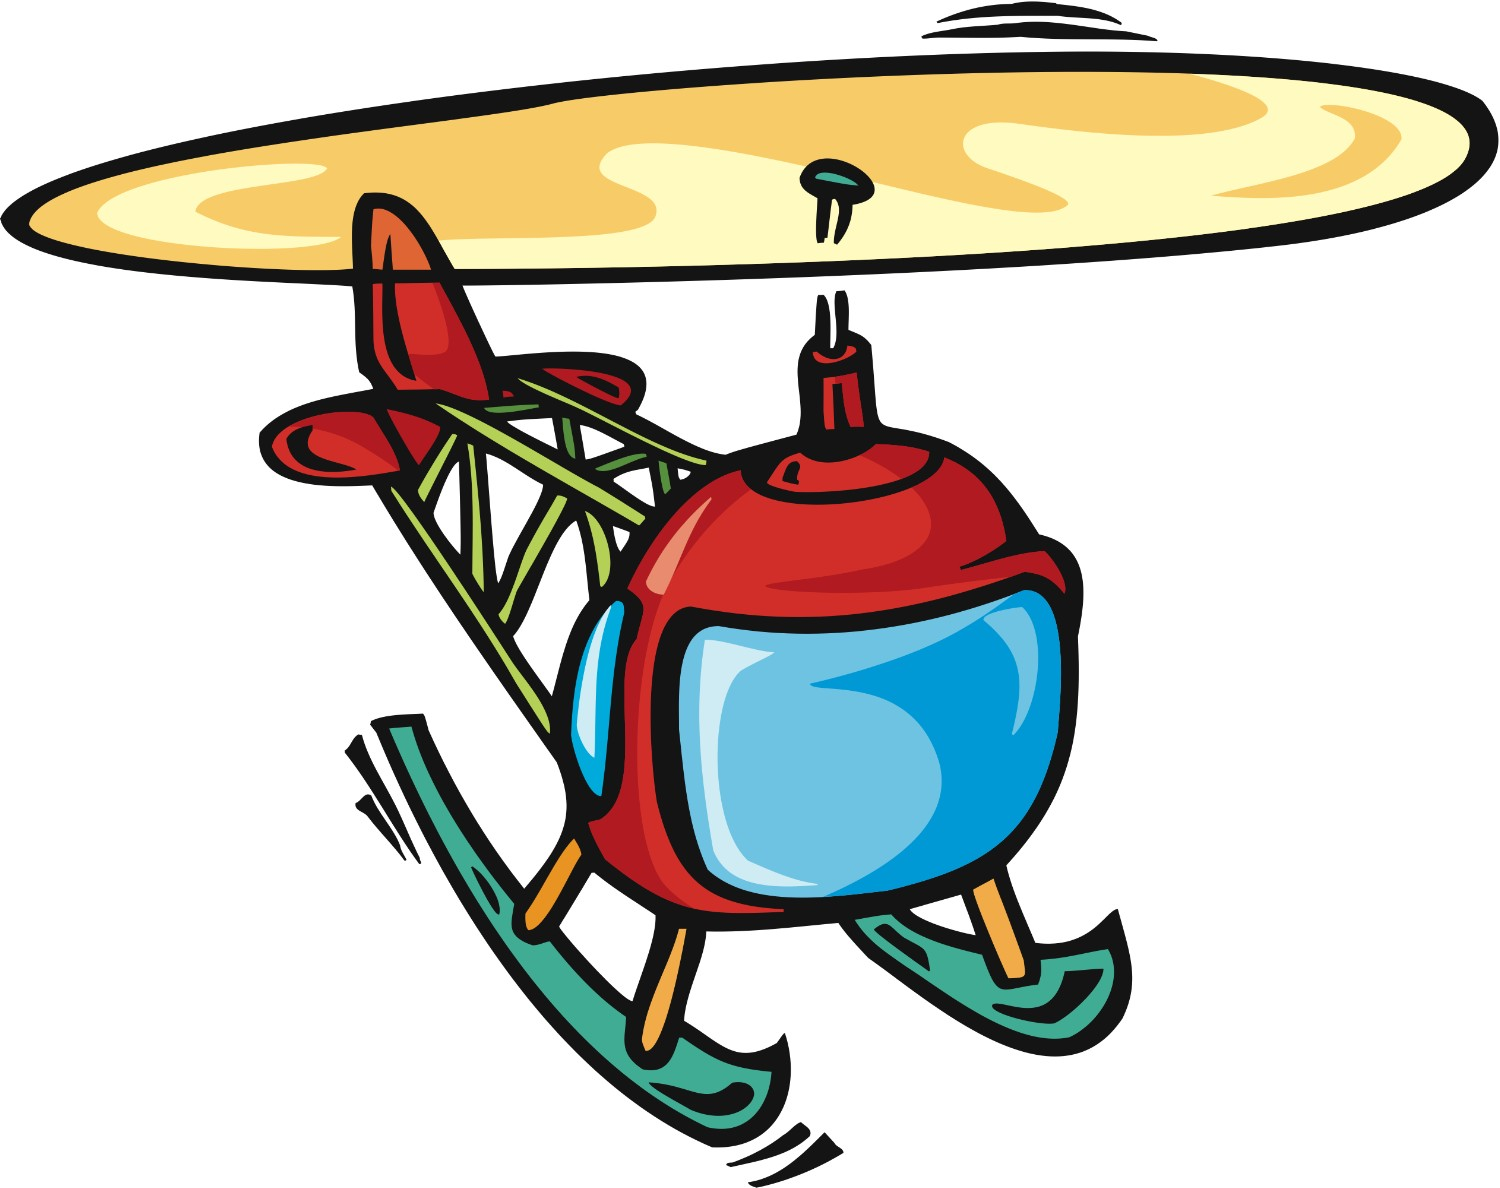 Blade clipart helicopter blade Helicopter Helicopter  The Go